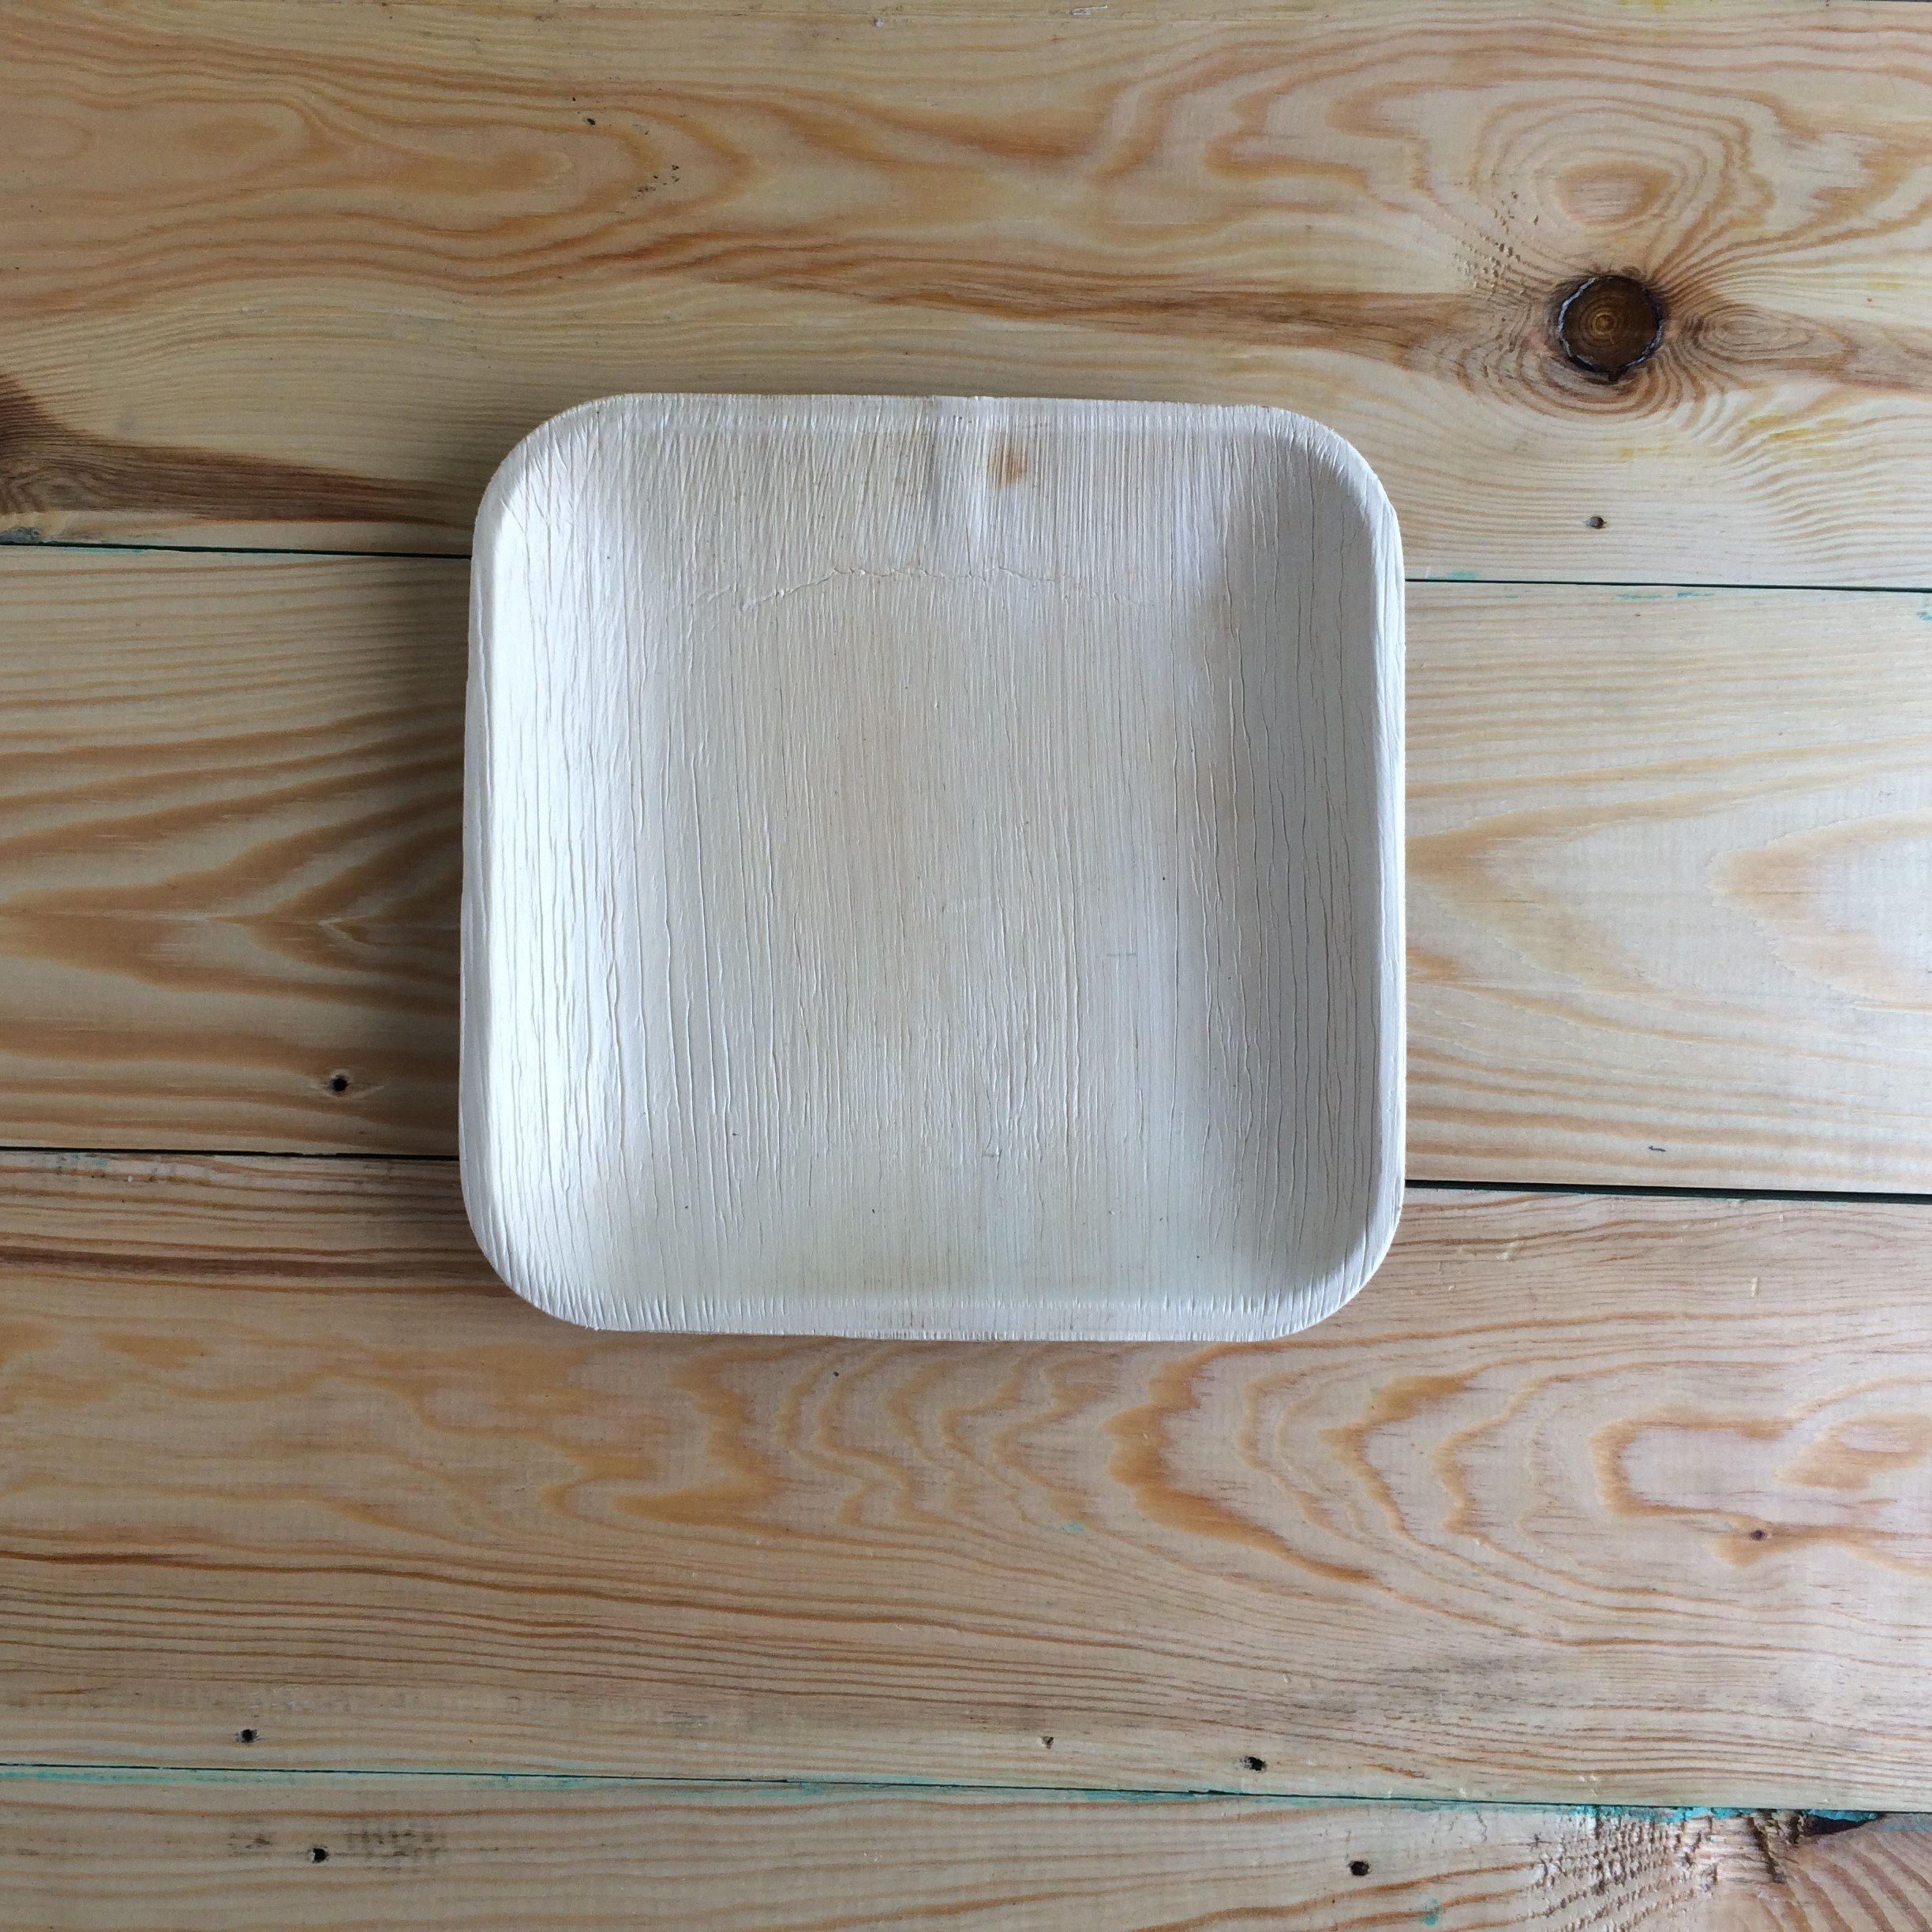 Disposable Plates Made of Palm Leaf: Heavy Duty & Eco - Better Than Wood & Bamboo- Square Shape (6'' Square Plate - 25 Pcs, Peach to tan) by Adaaya (Image #6)